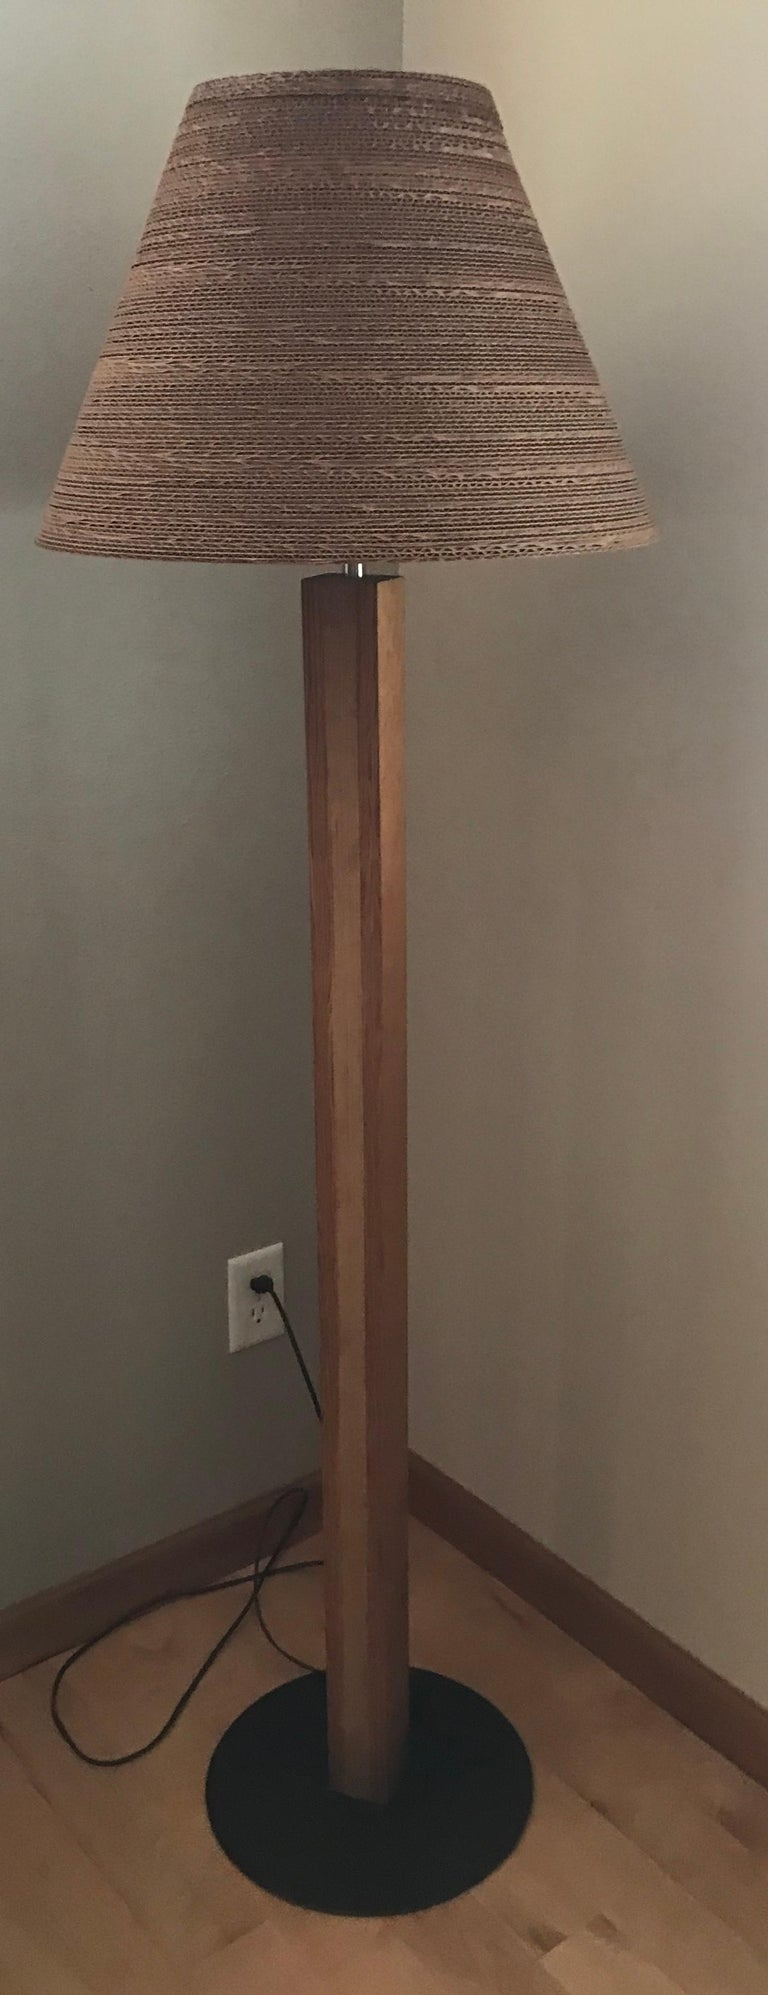 A pair of corrugated conical shade floor lamps with wood column bodies and brown iron disc bases. Often attributed to the architect, Frank Gehry.